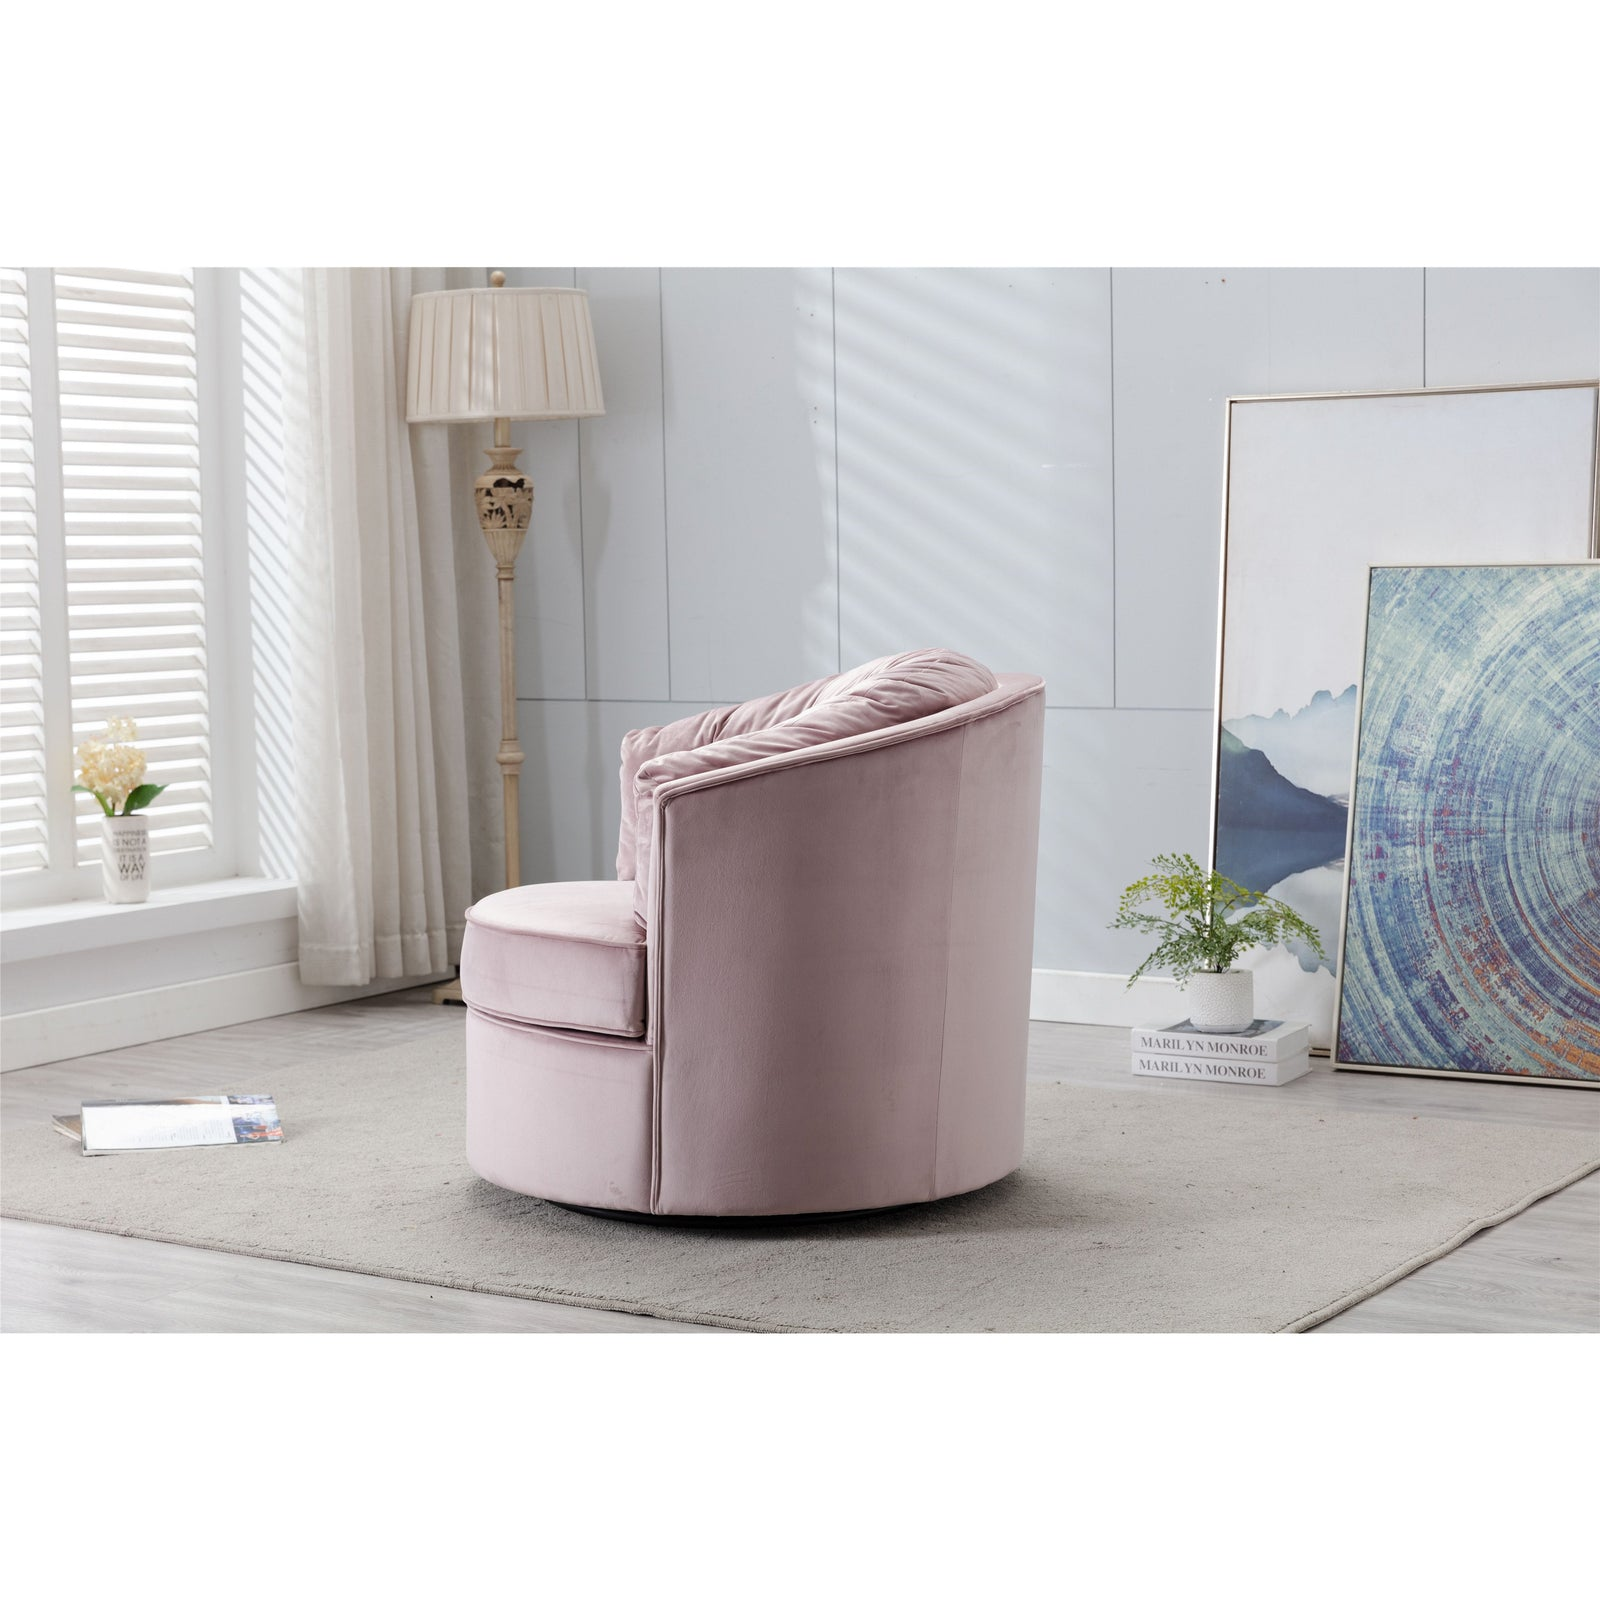 Dim Gray Modern Swivel Accent Chair Barrel Chair Leisure Chair for Living Room BH3951828